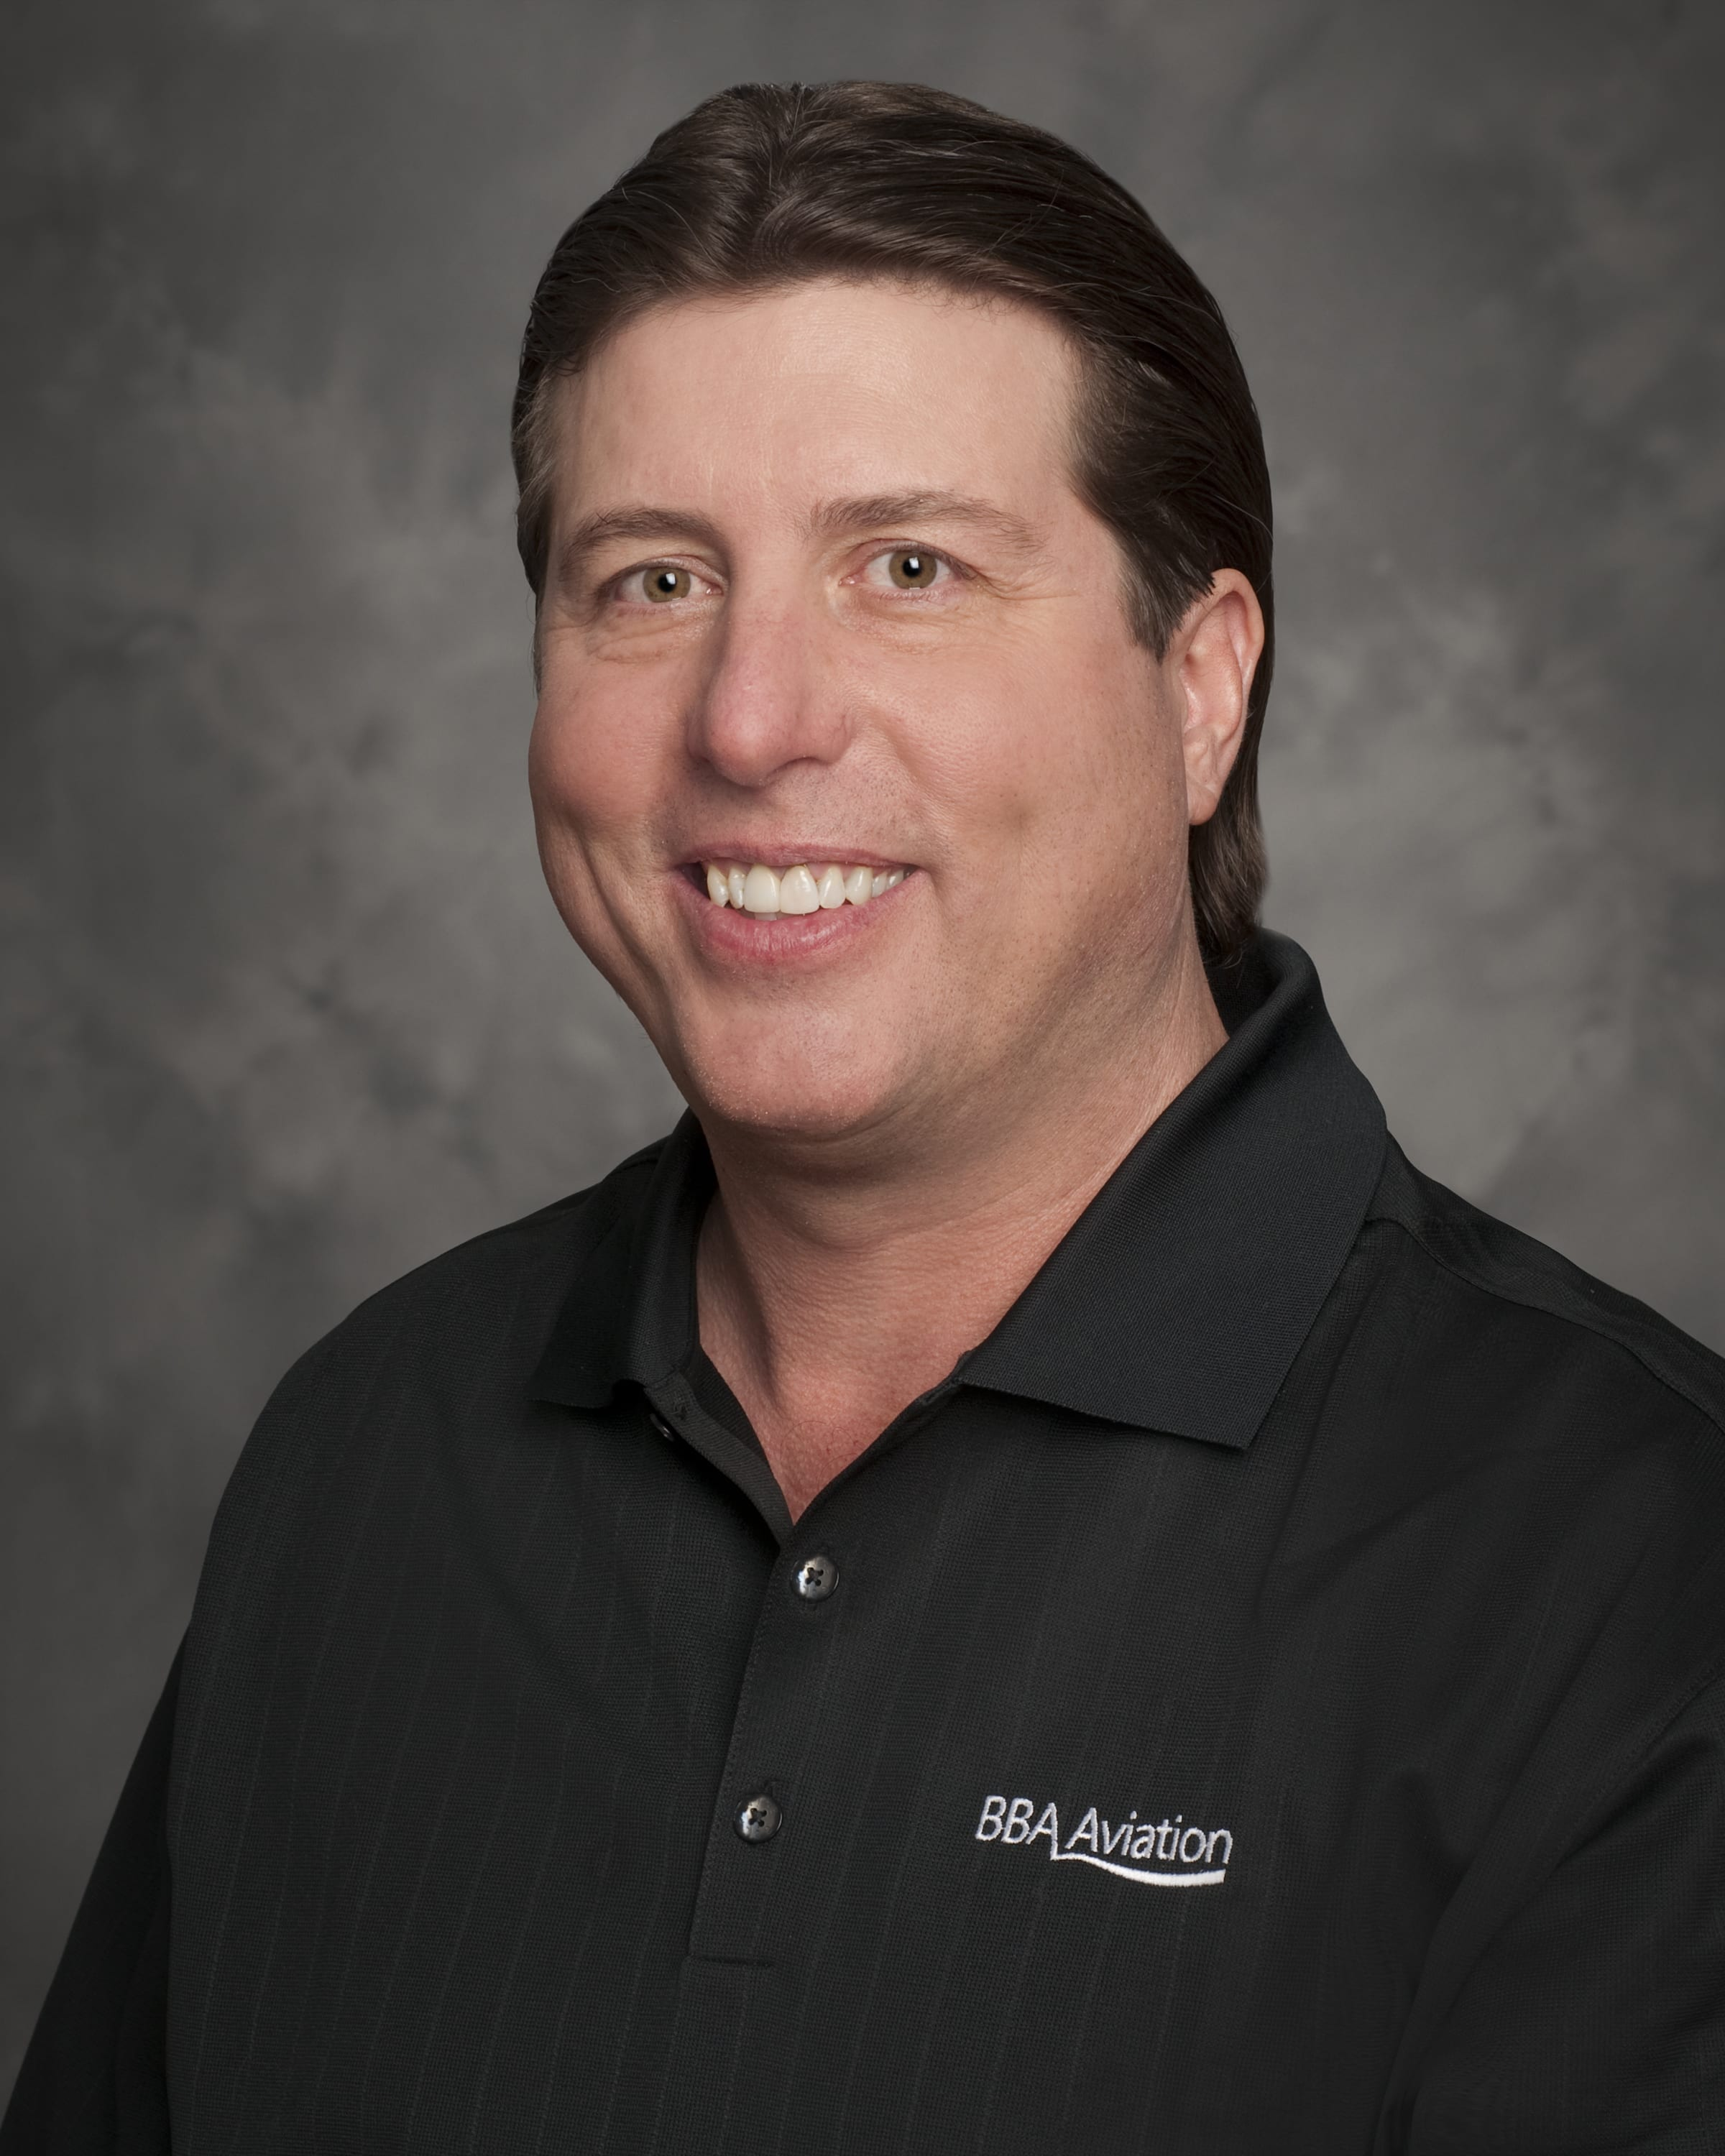 Worthington appointed Dallas Airmotive regional manager